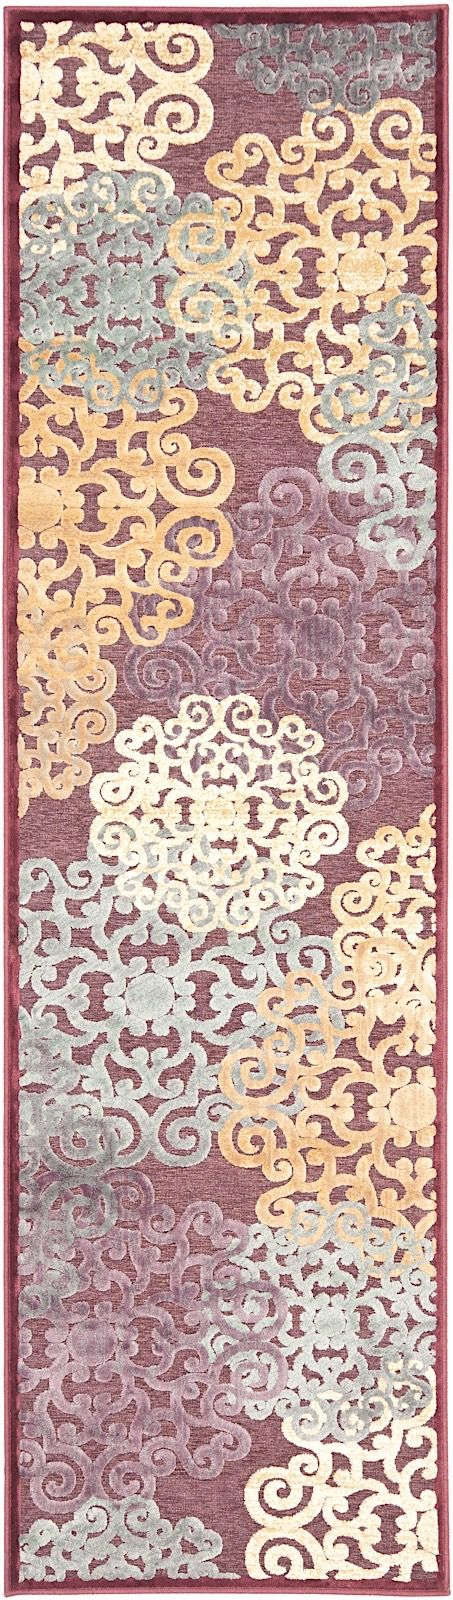 safavieh paradise traditional area rug collection